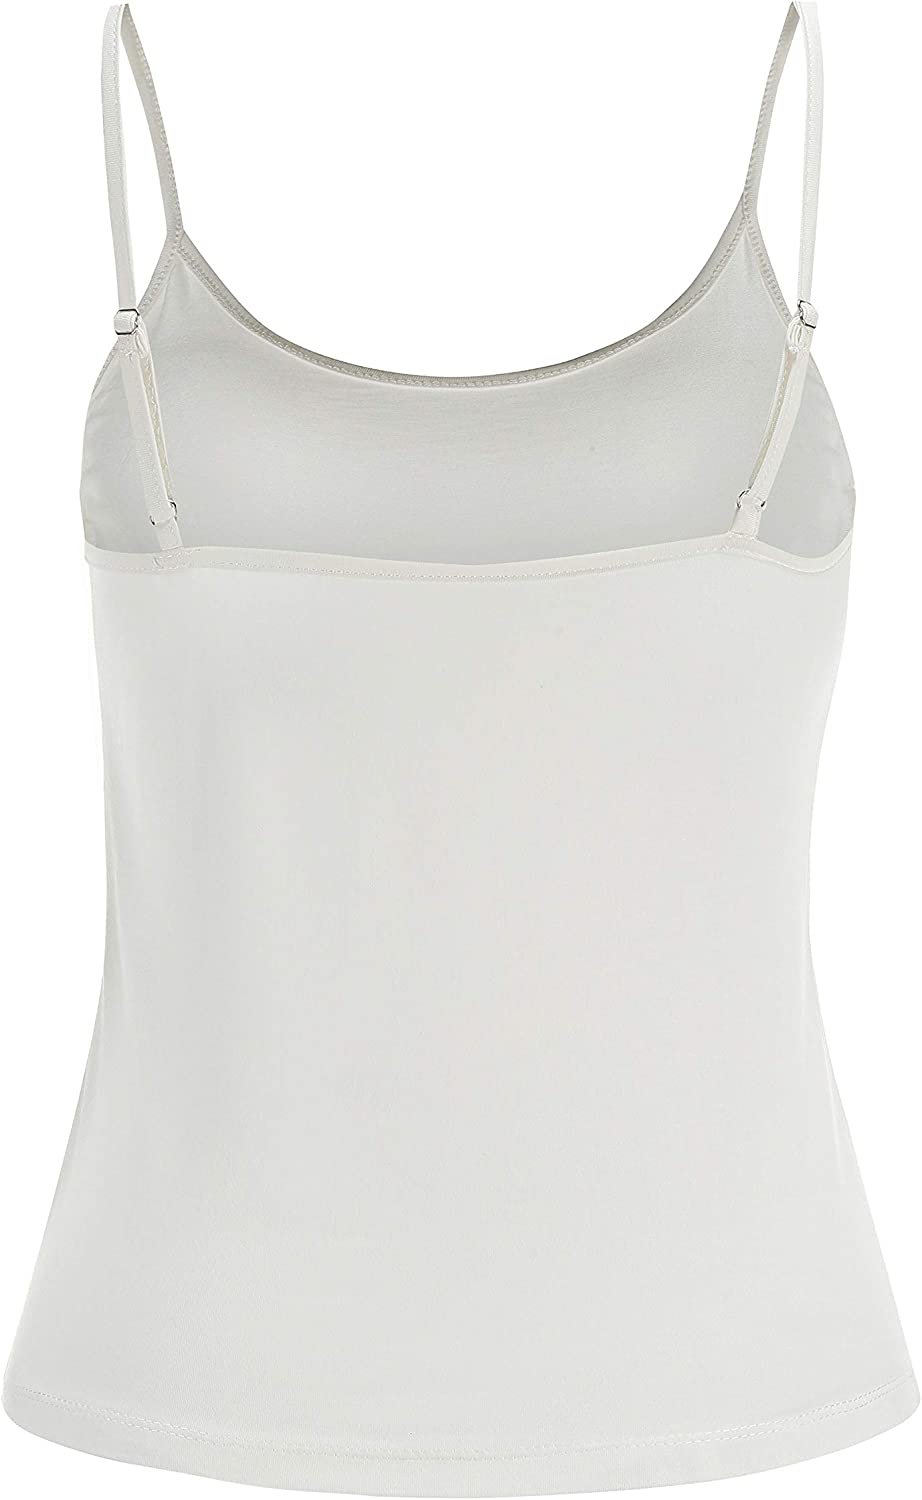 Naturally99 Womens Lace Mesh Blouses 9045T Including Sleeveless Premium Rayon Span Jersey Camisol Top Knit Shirts